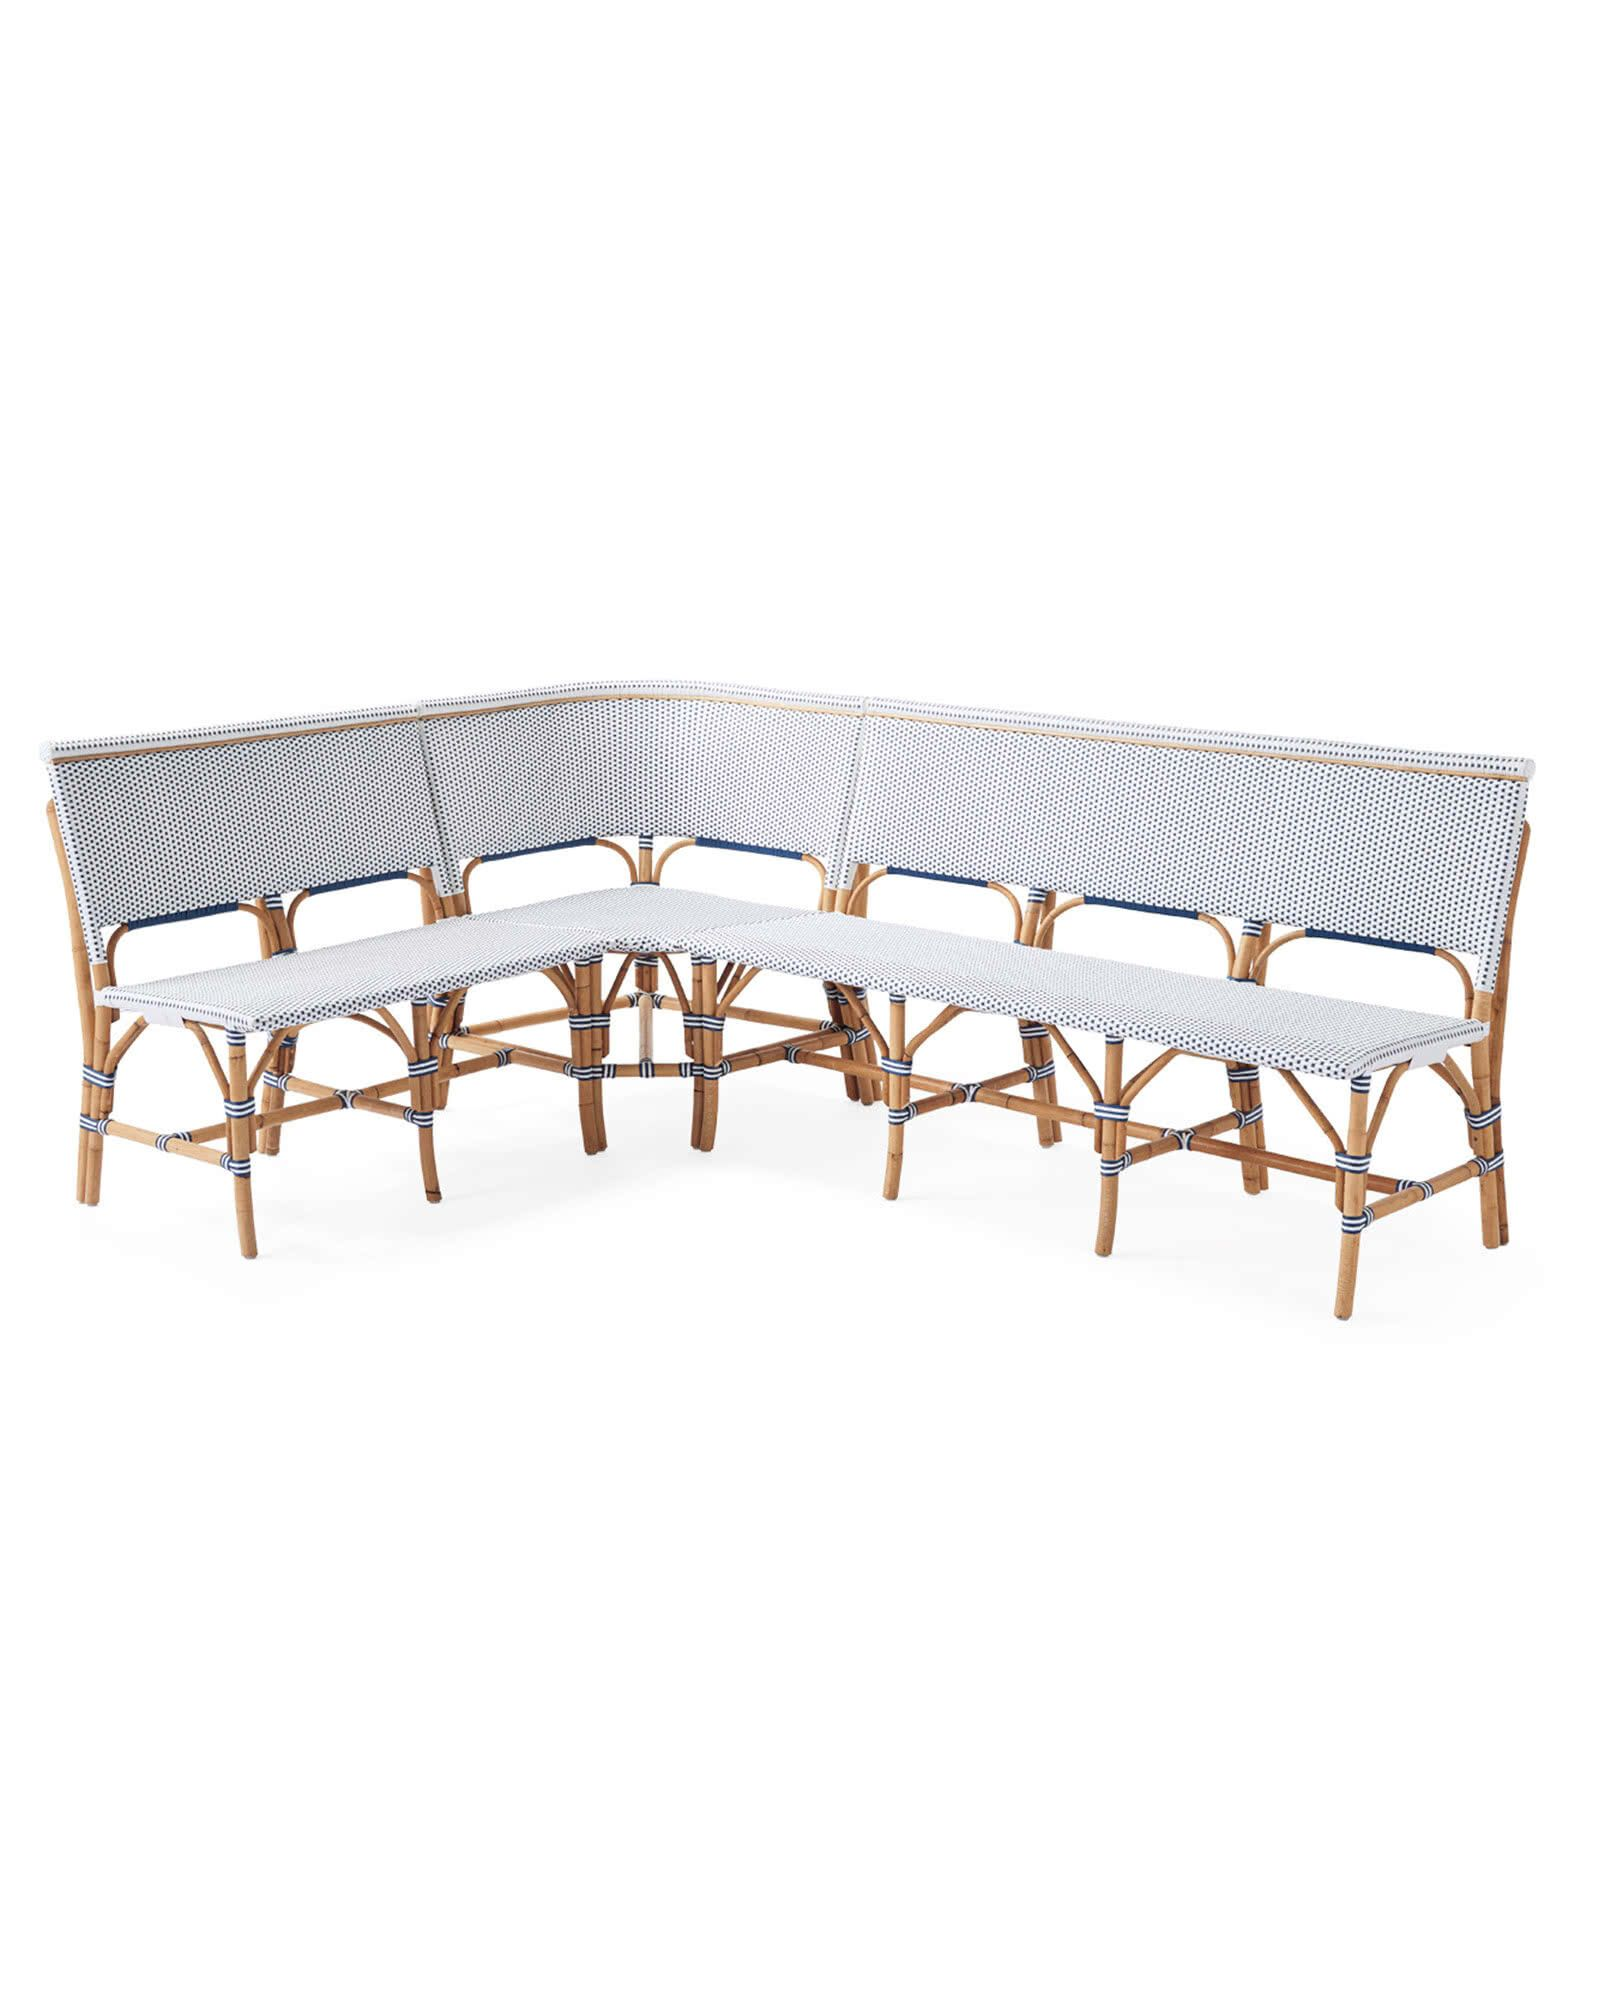 Riviera Banquette L Shaped Navy Bistro Style Hand Bent Rattan Home Decor Furniture Serena Lily Similar To St Germain Resin In 2020 Banquette Seating In Kitchen Bistro Chairs French Bistro